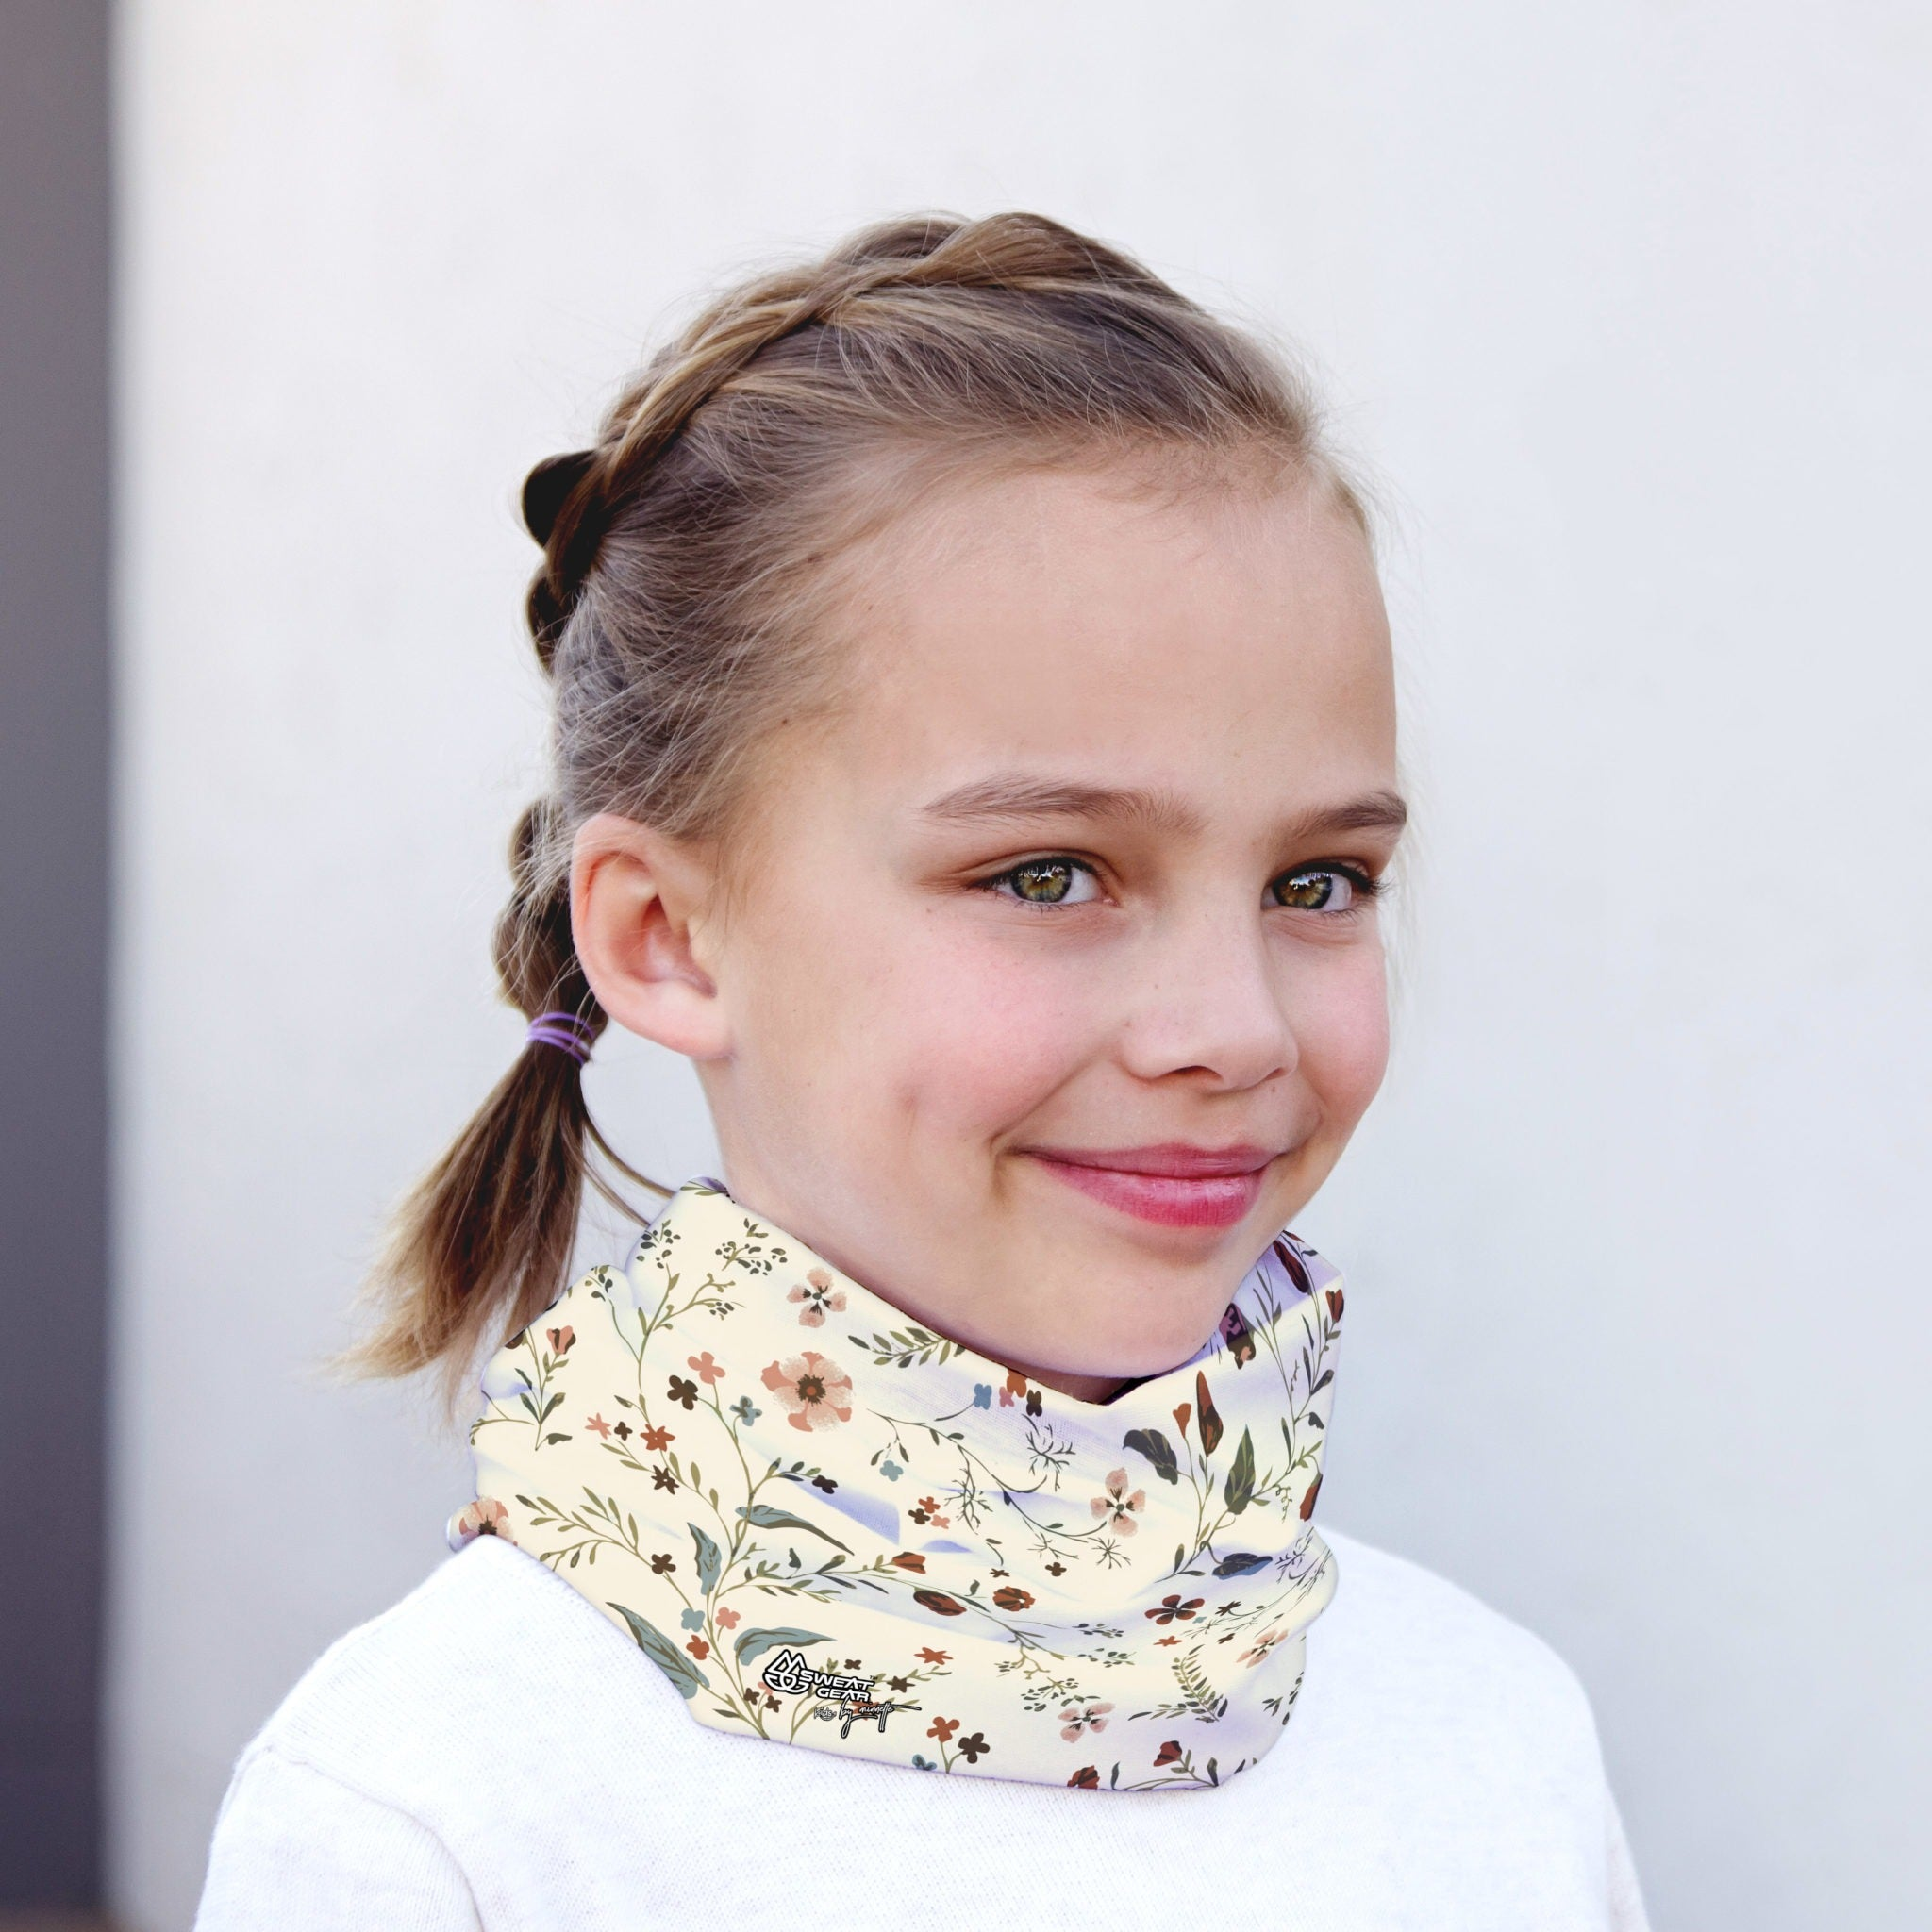 Fleur Buff (Sweatgear.Kids Designed by Minnette)